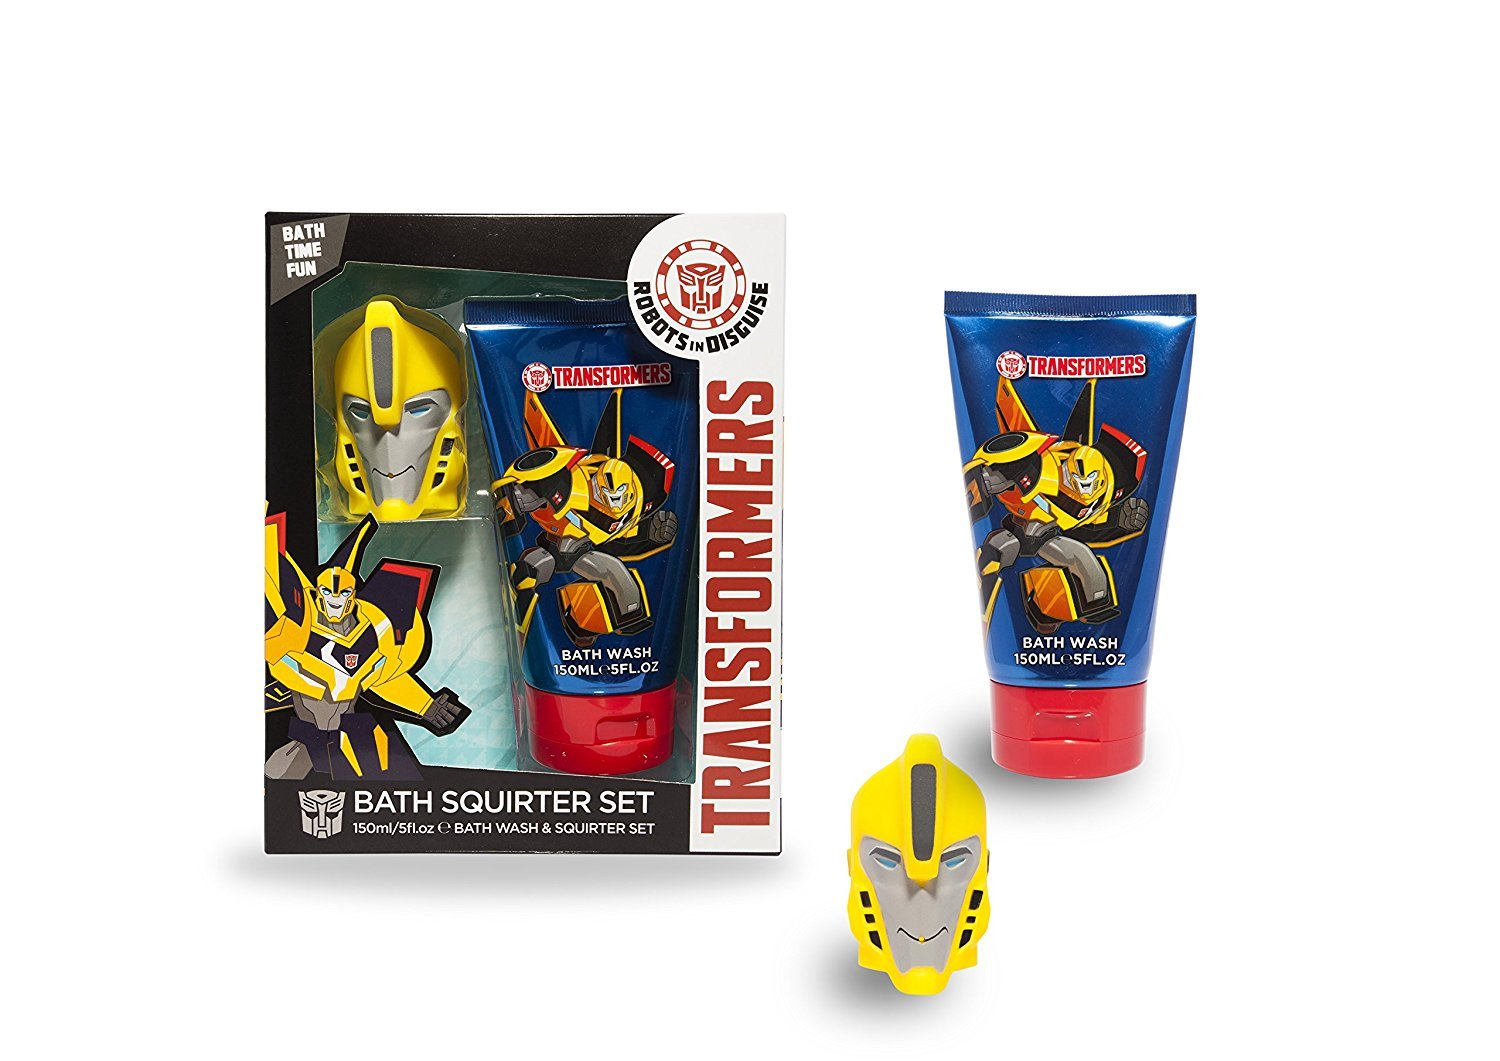 Transformers Body Wash Bath Set with Bumblebee Squirter SnS